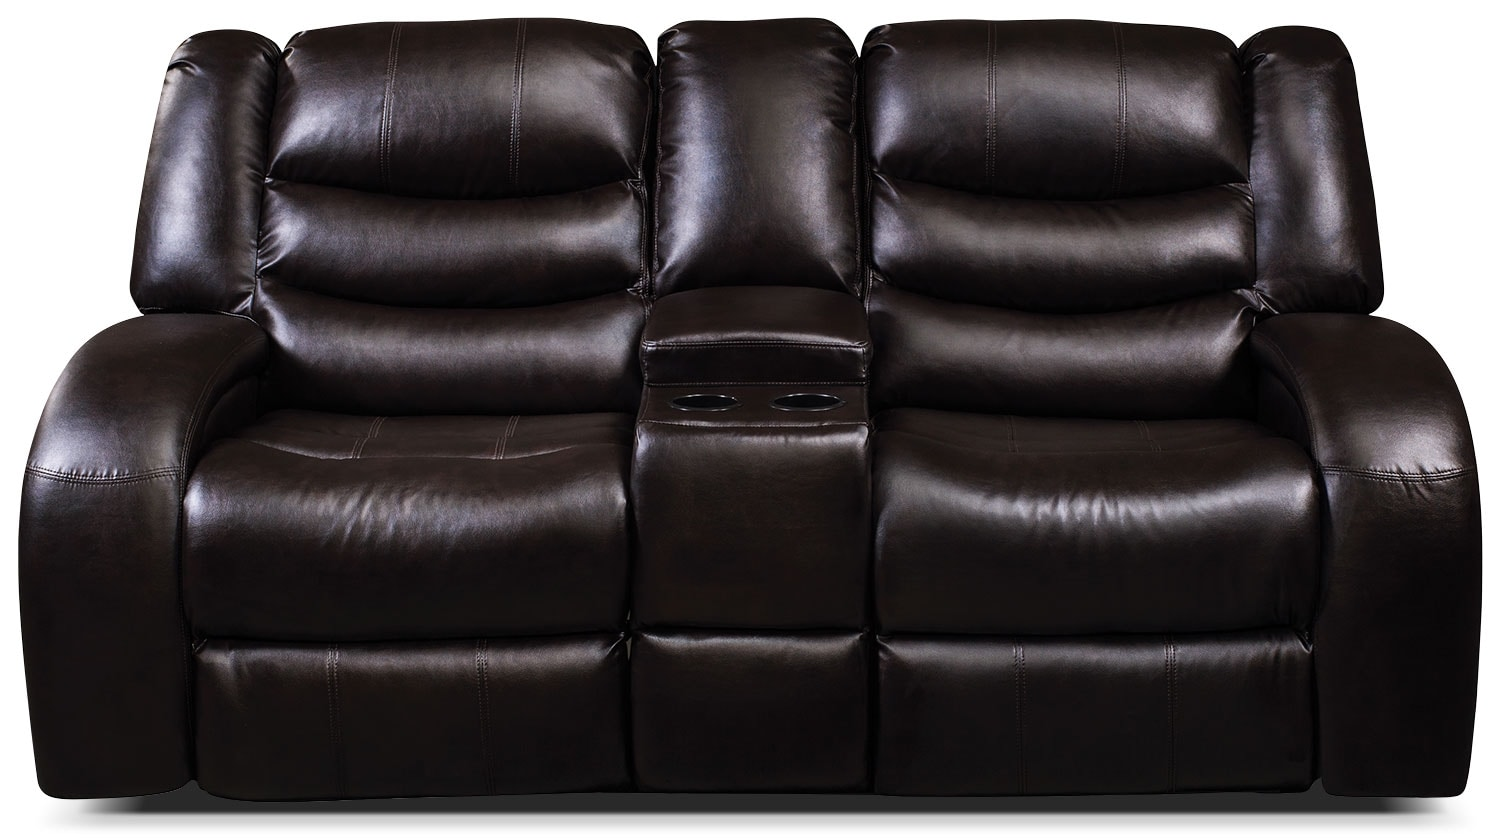 Living Room Furniture - Angus Bonded Leather Reclining Loveseat with Console – Dark Brown